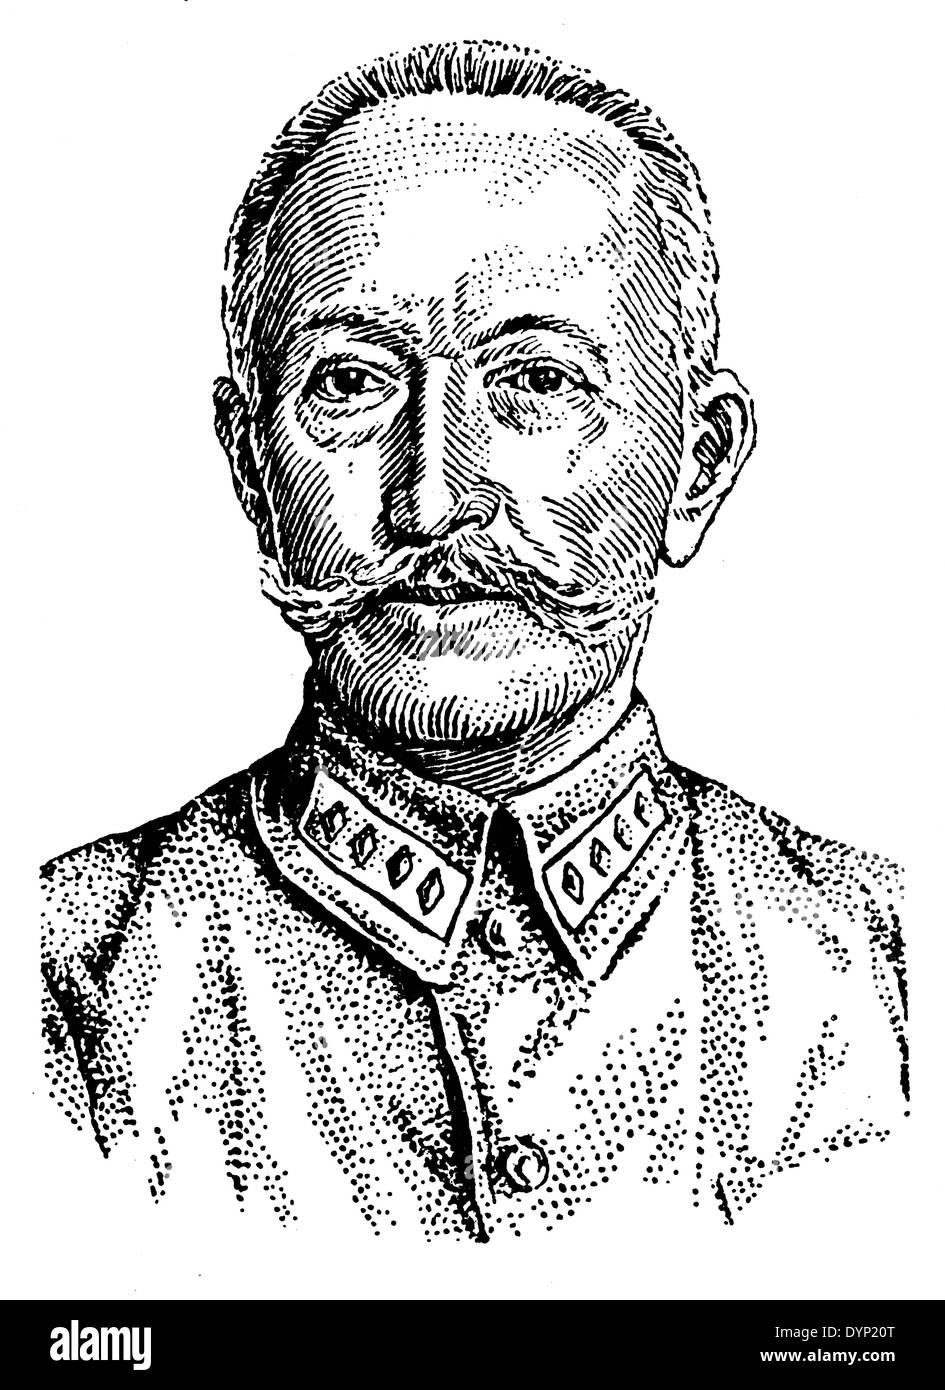 Aleksei Brusilov (1853-1926), Russian cavalry general, illustration from Soviet encyclopedia, 1927 - Stock Image